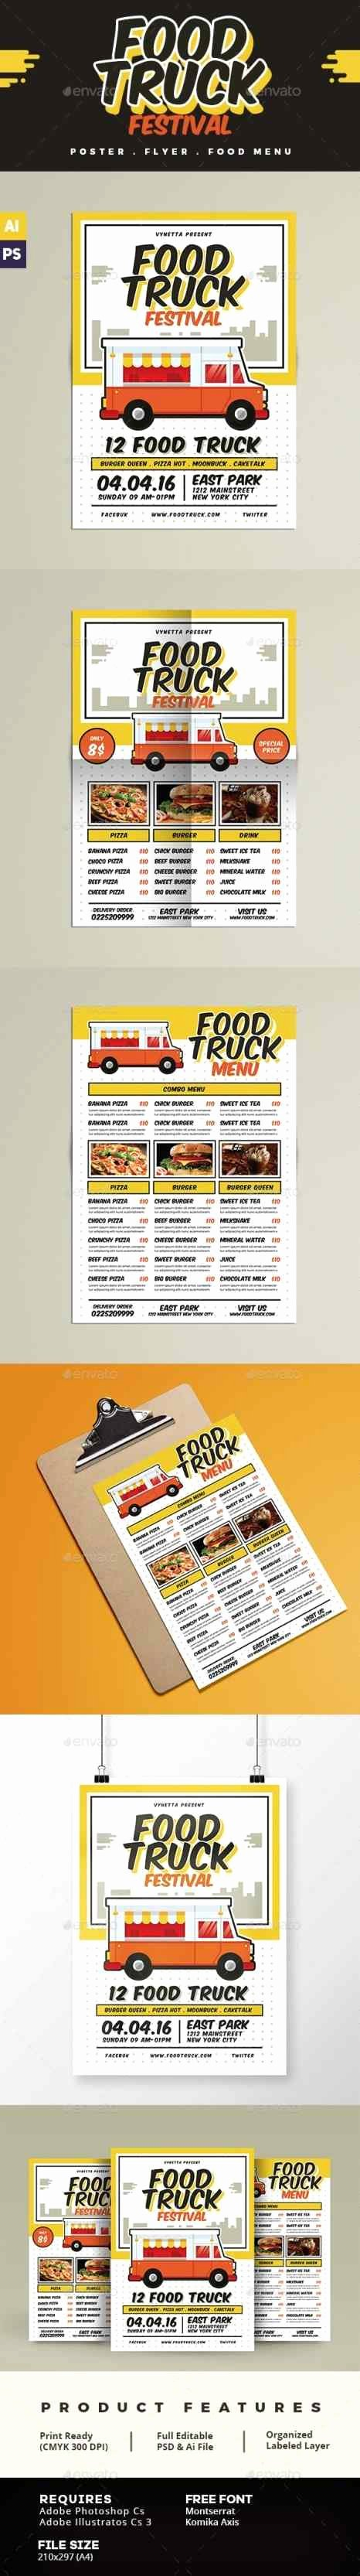 Concession Stand Price List Template Beautiful Food Truck Menu Template Arch Dsgn